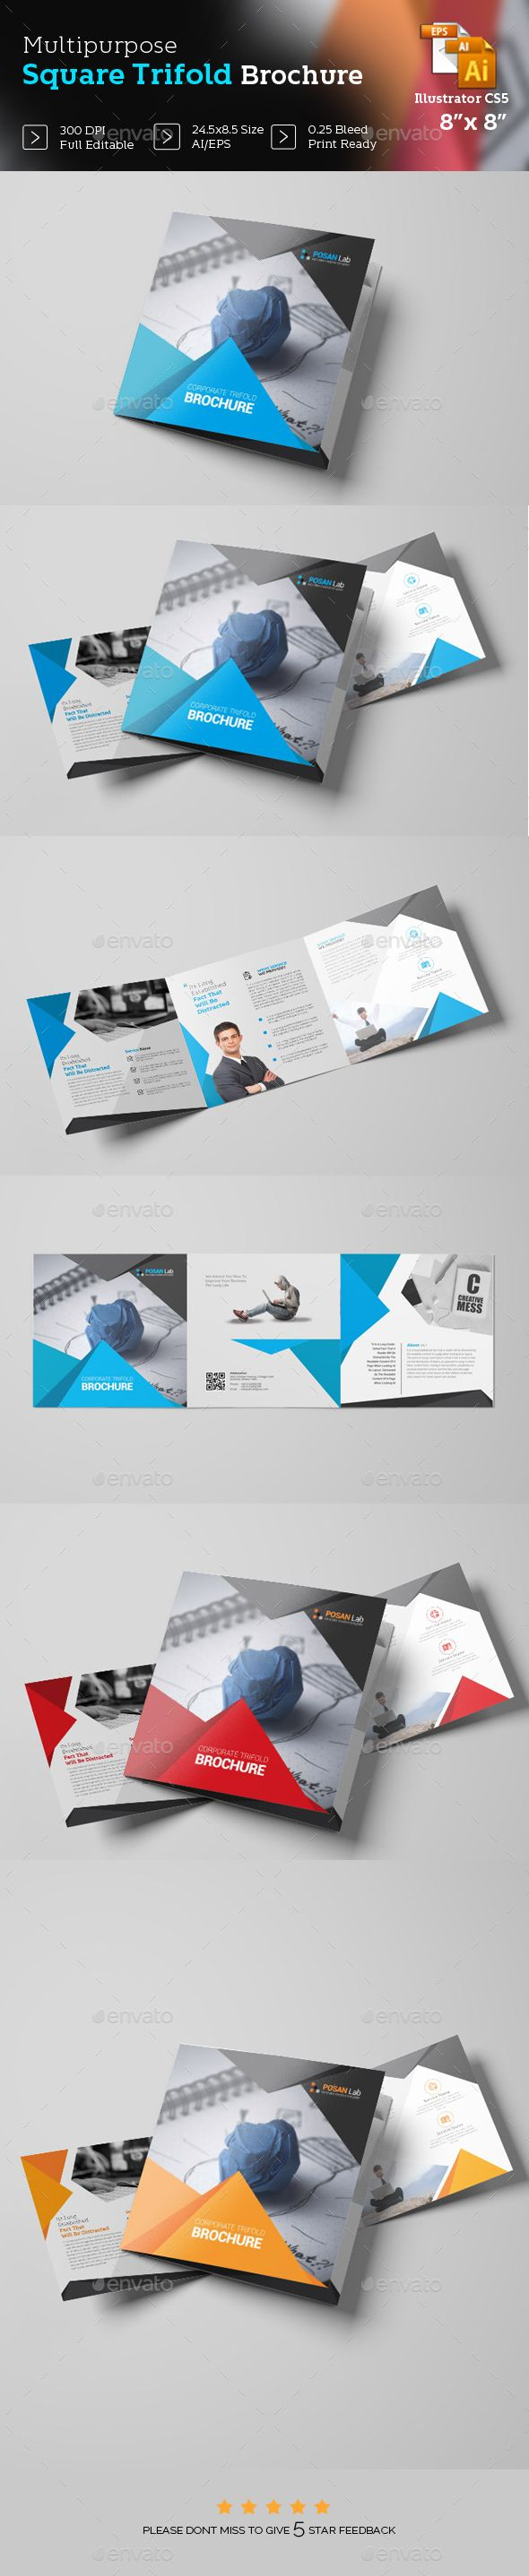 Square Trifold Brochure Template - #Brochures Print #Templates Download here: https://graphicriver.net/item/square-trifold-brochure-template/19426971?ref=alena994